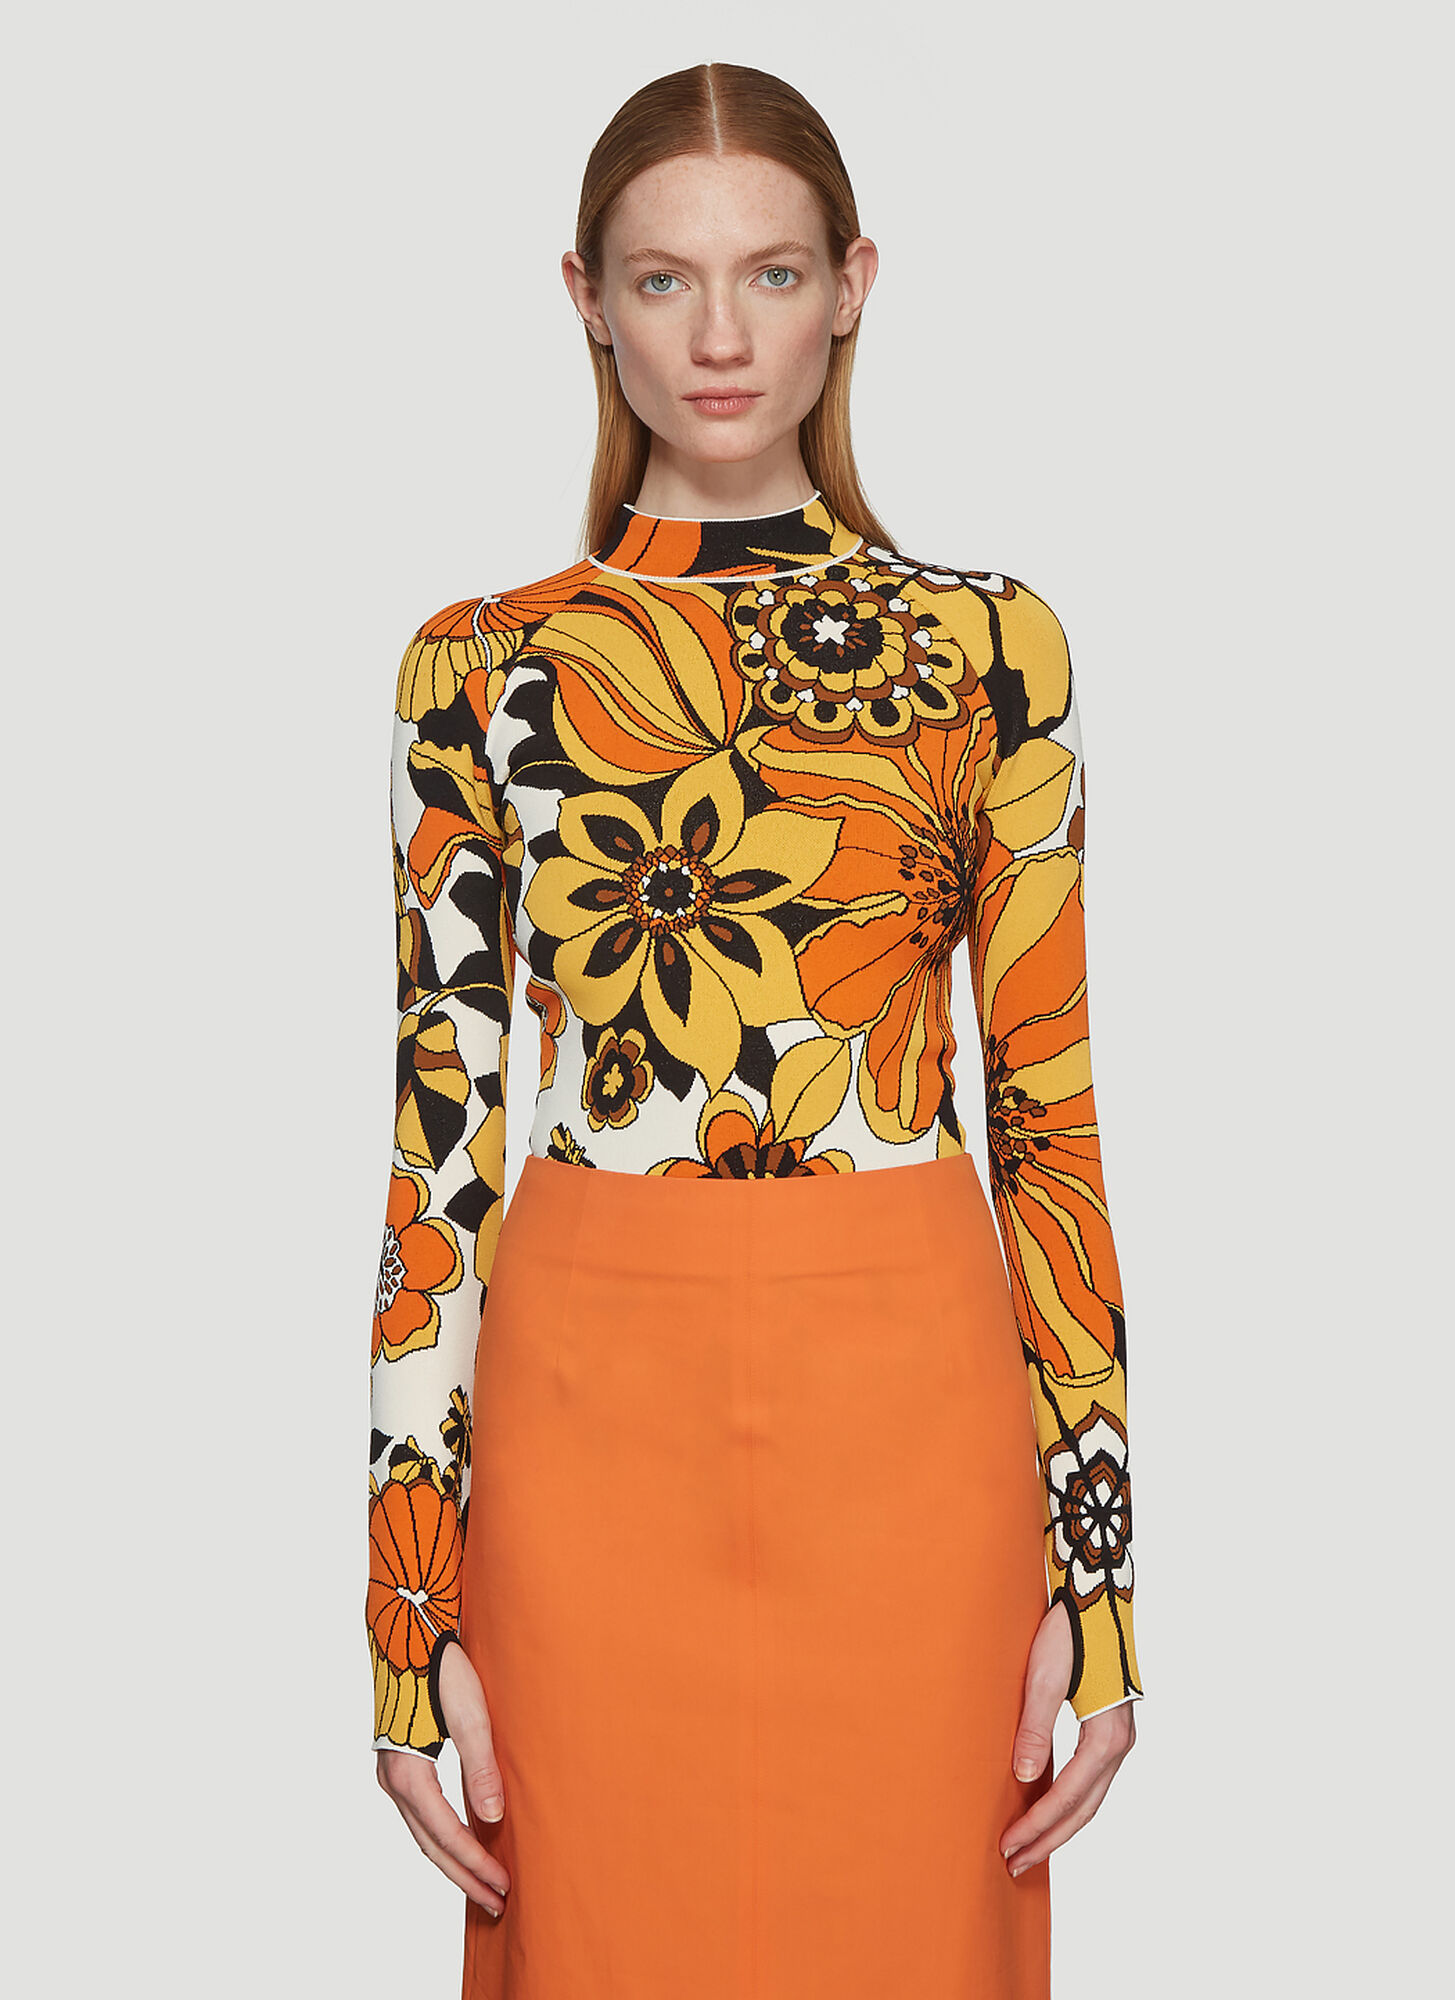 Kwaidan Editions Floral Jacquard Bodysuit in Orange